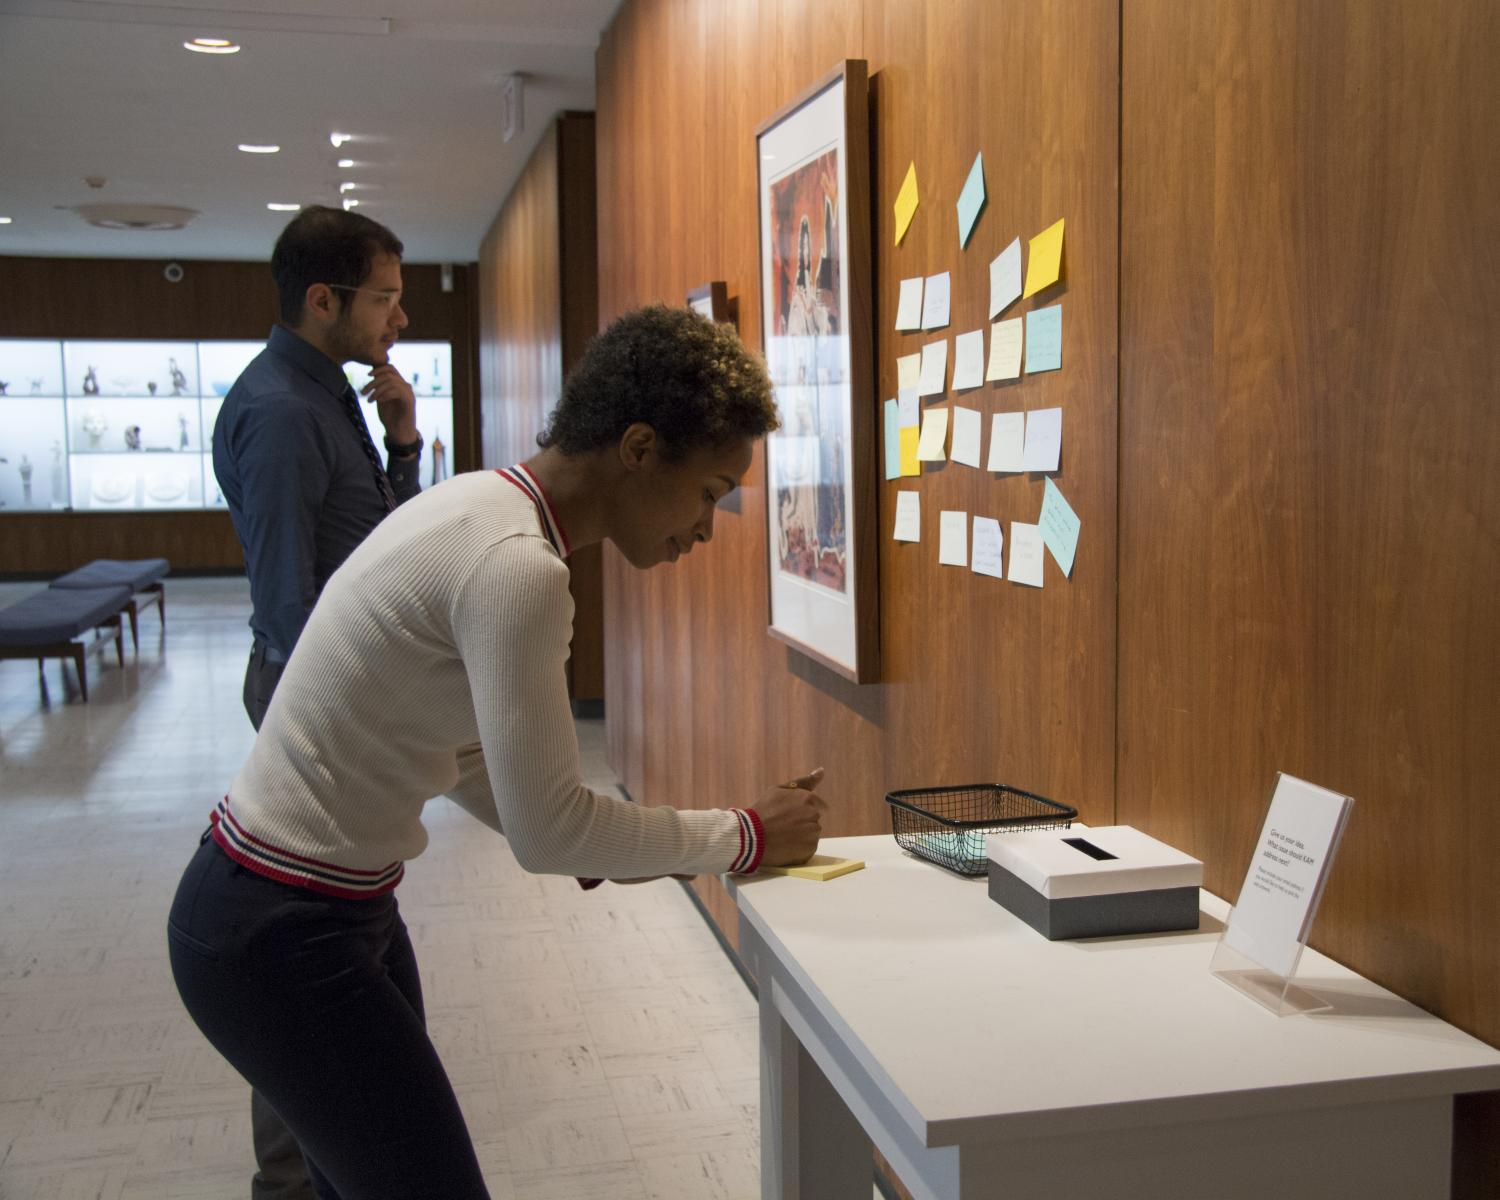 Amber Crawford and Fabian Jimenez engage with KAM's Response Wall, featuring John Clem Clarke's lithograph <em>Louis XIV</em>, 1969.